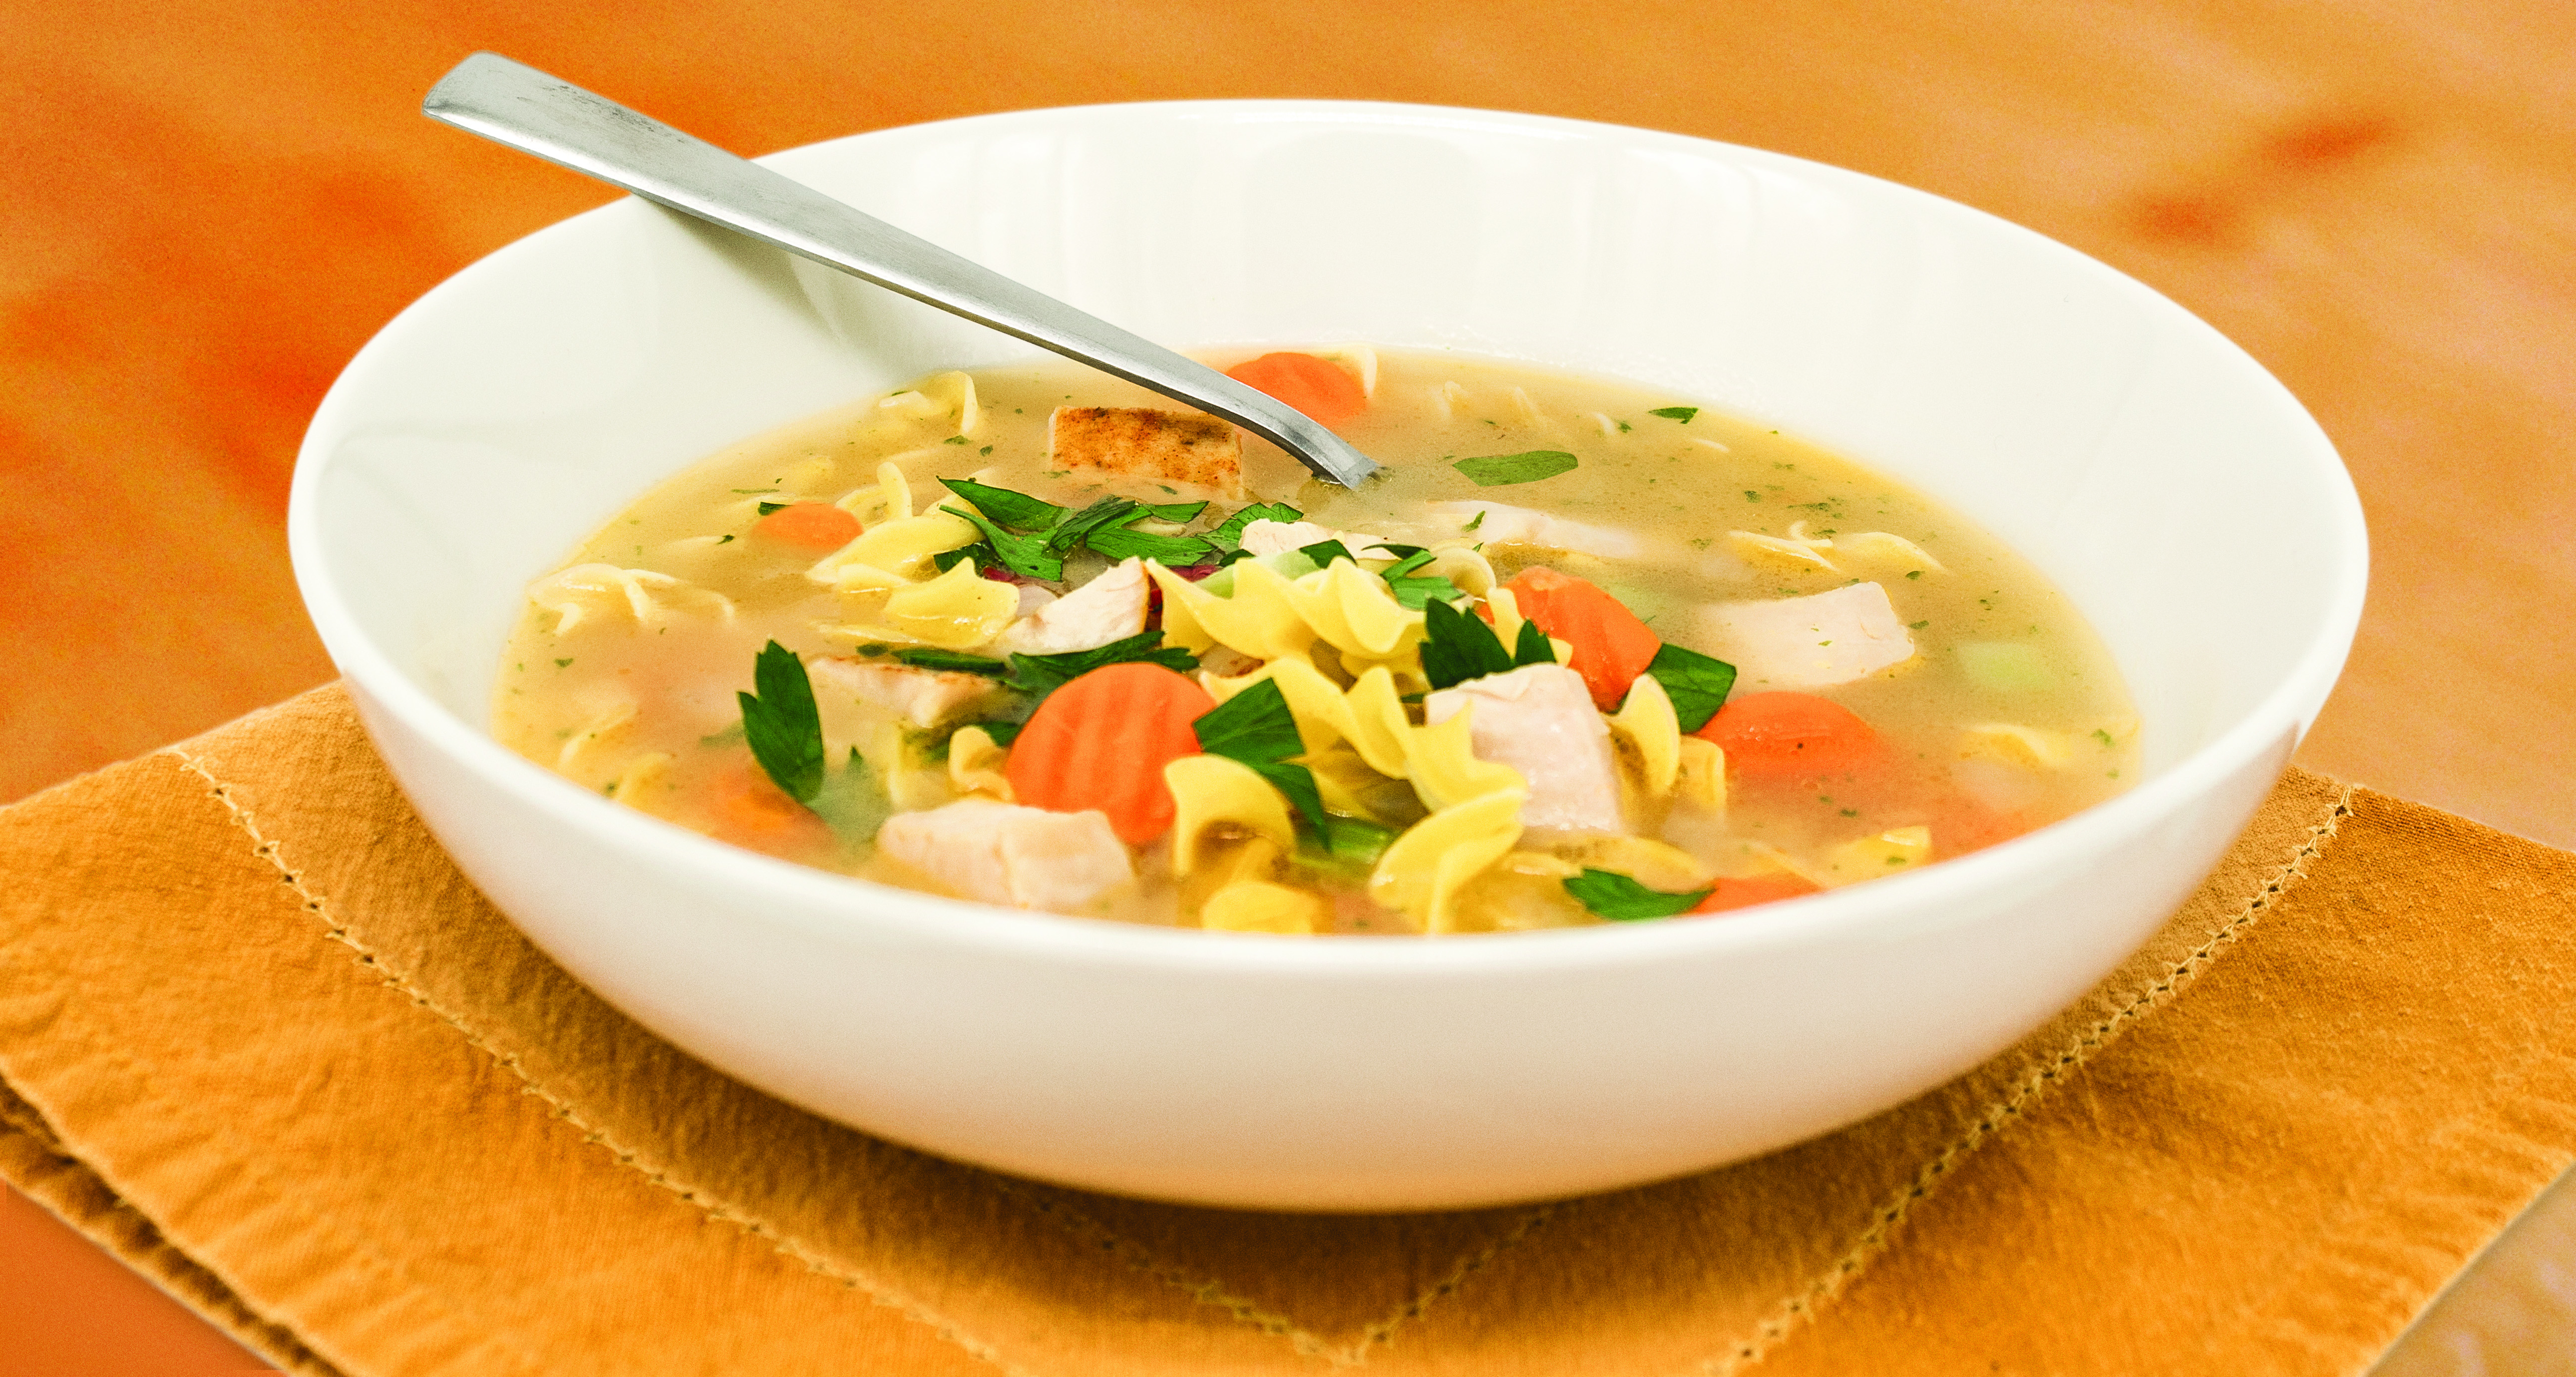 Turkey Noodle Soup With Egg Noodles Carrots And Cubed Turkey In A Light Broth